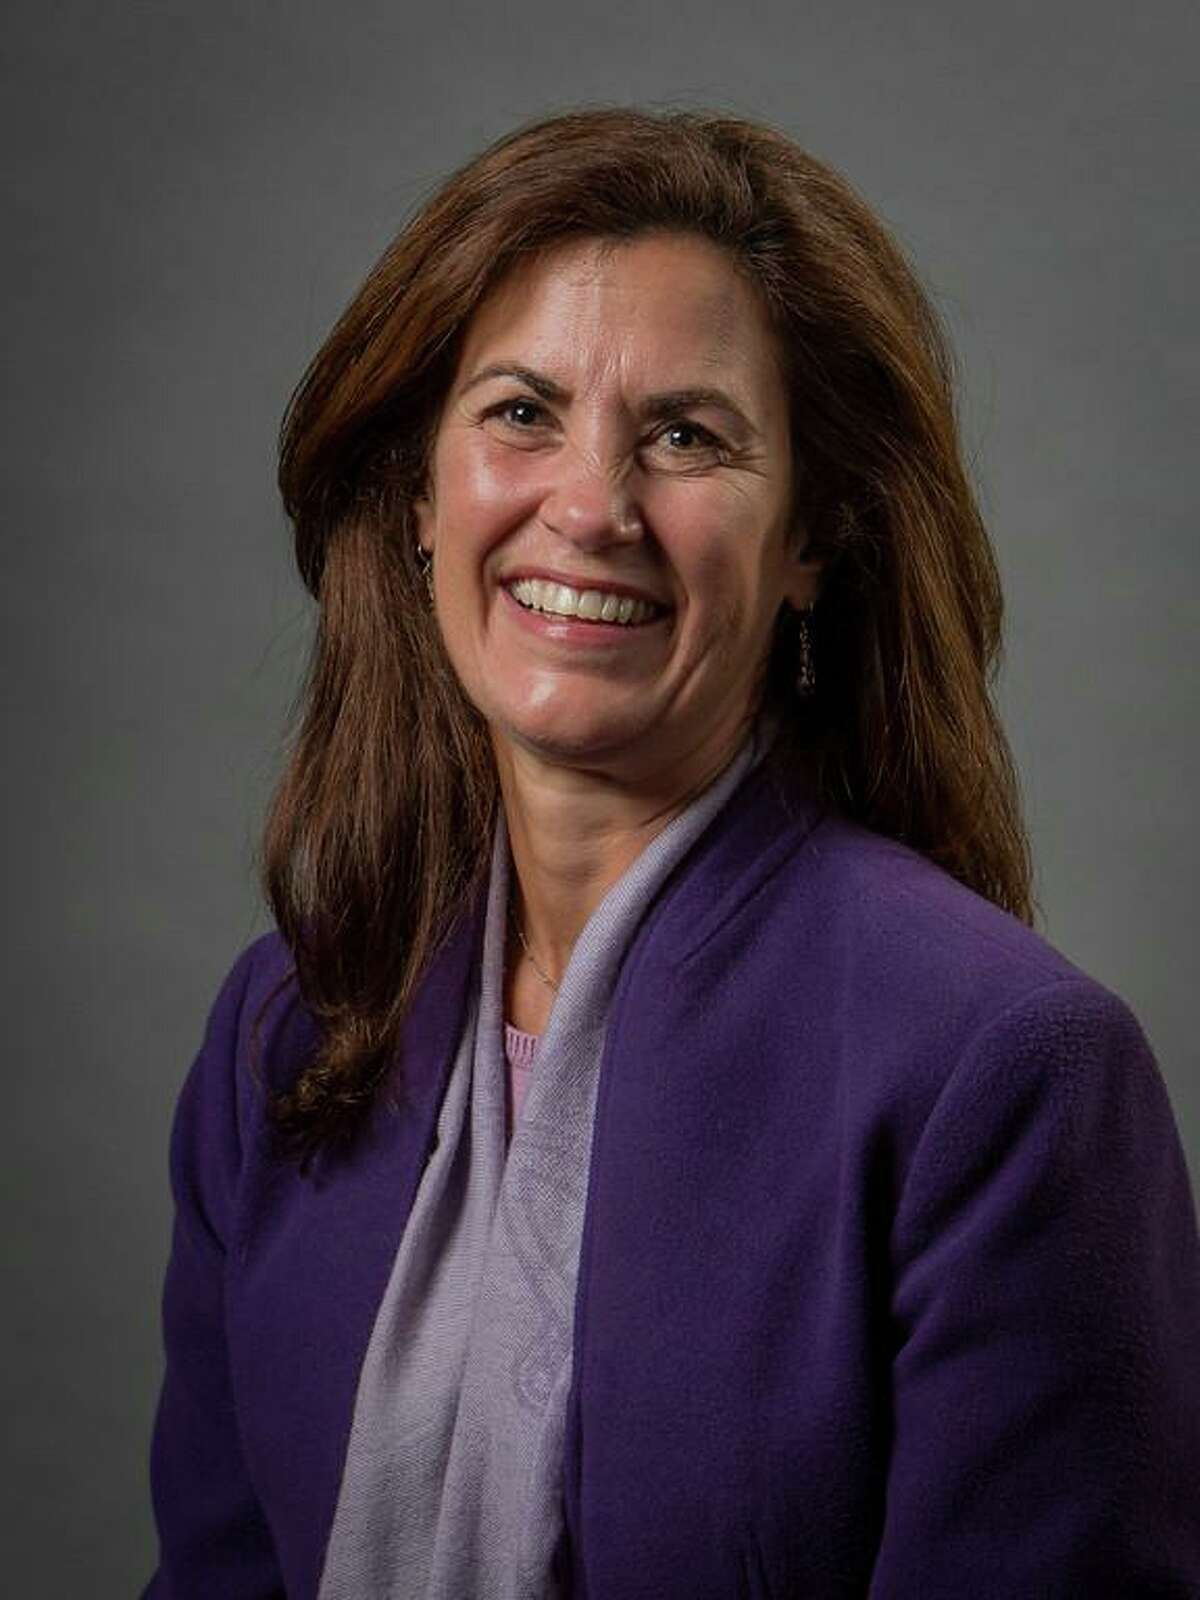 Stephanie Arlis-Mayor is the chairperson of the CIAC's Connecticut State Medical Society (CSMS) committee and the head team physician for Yale University athletics.